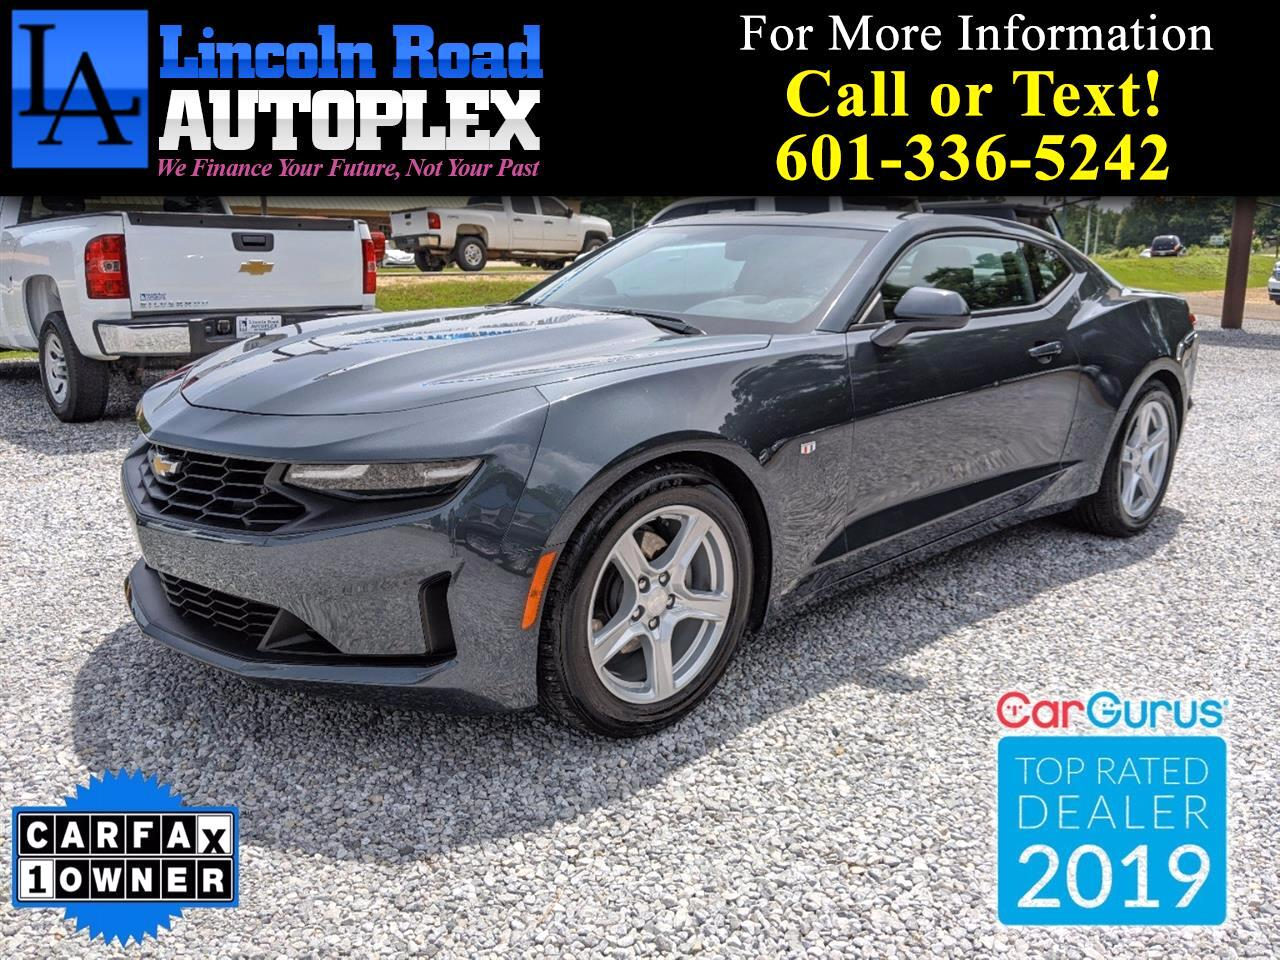 Used Cars For Sale Hattiesburg Ms 39402 Lincoln Road Autoplex